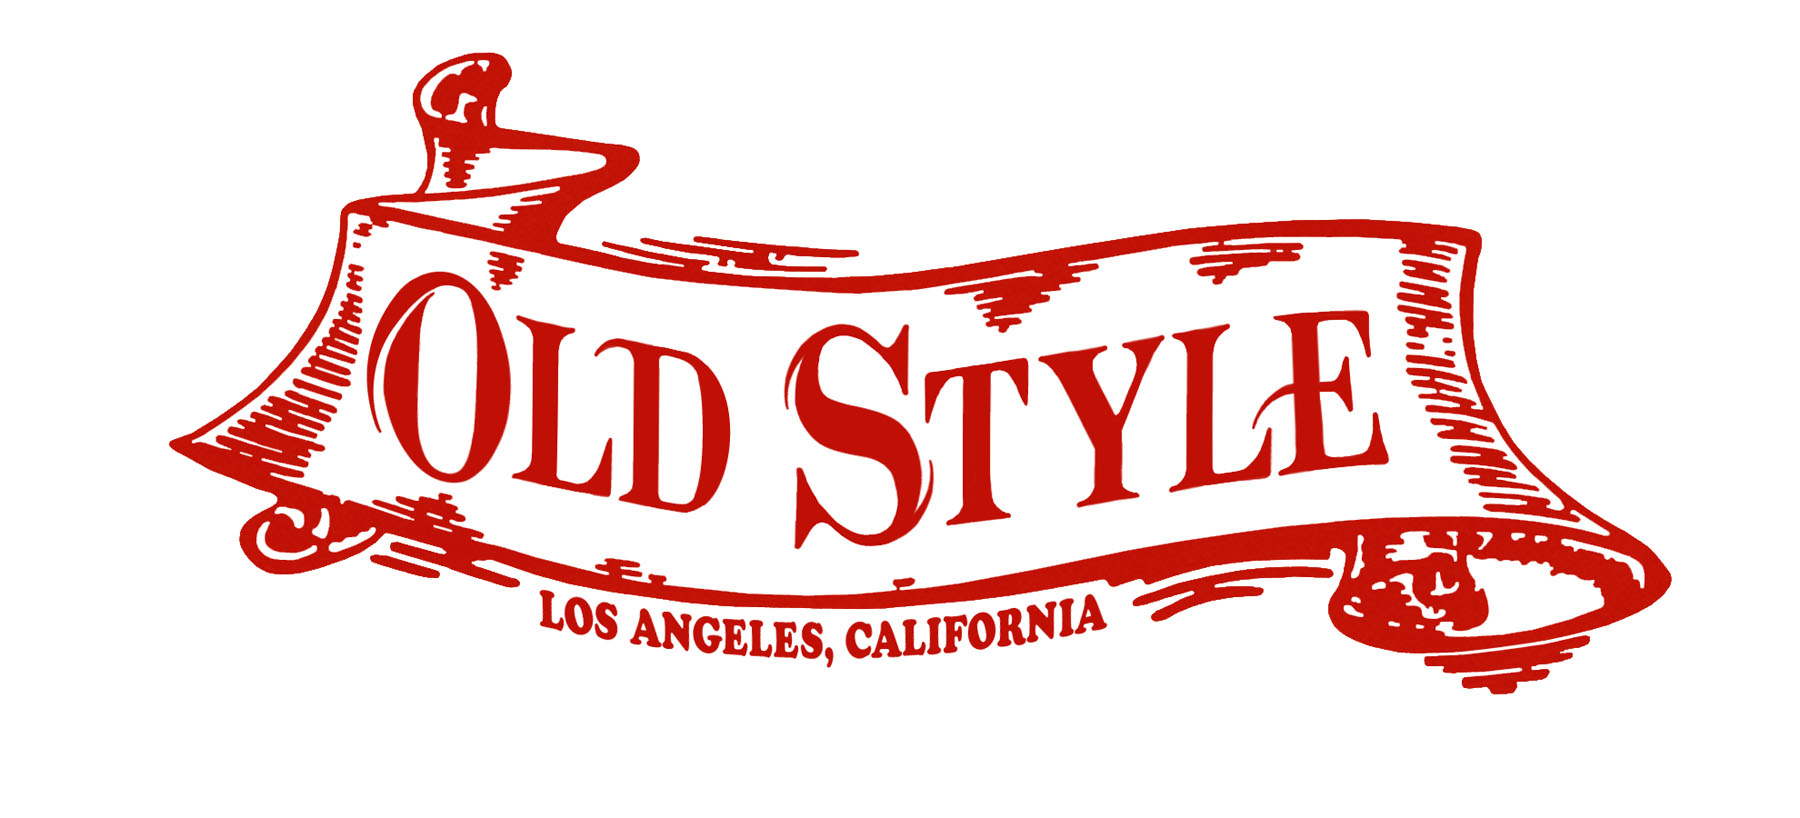 old fashioned logos